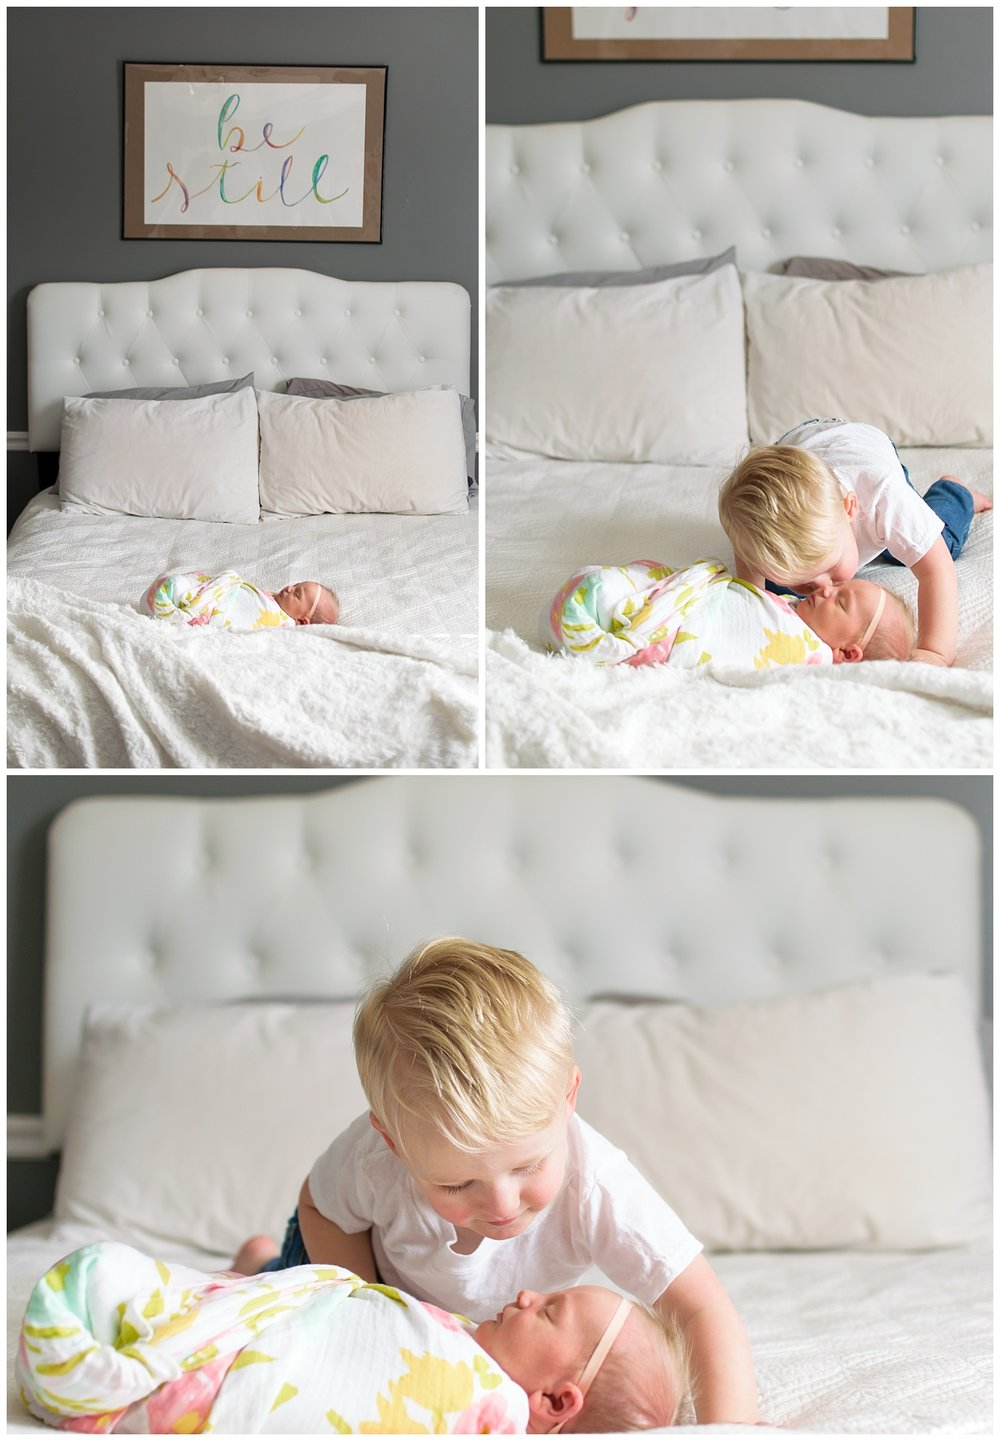 these are images from an in home lifestyle newborn session. the newborn baby girl is laying on the bed in a swaddle and her big brother is kissing her on the cheek.